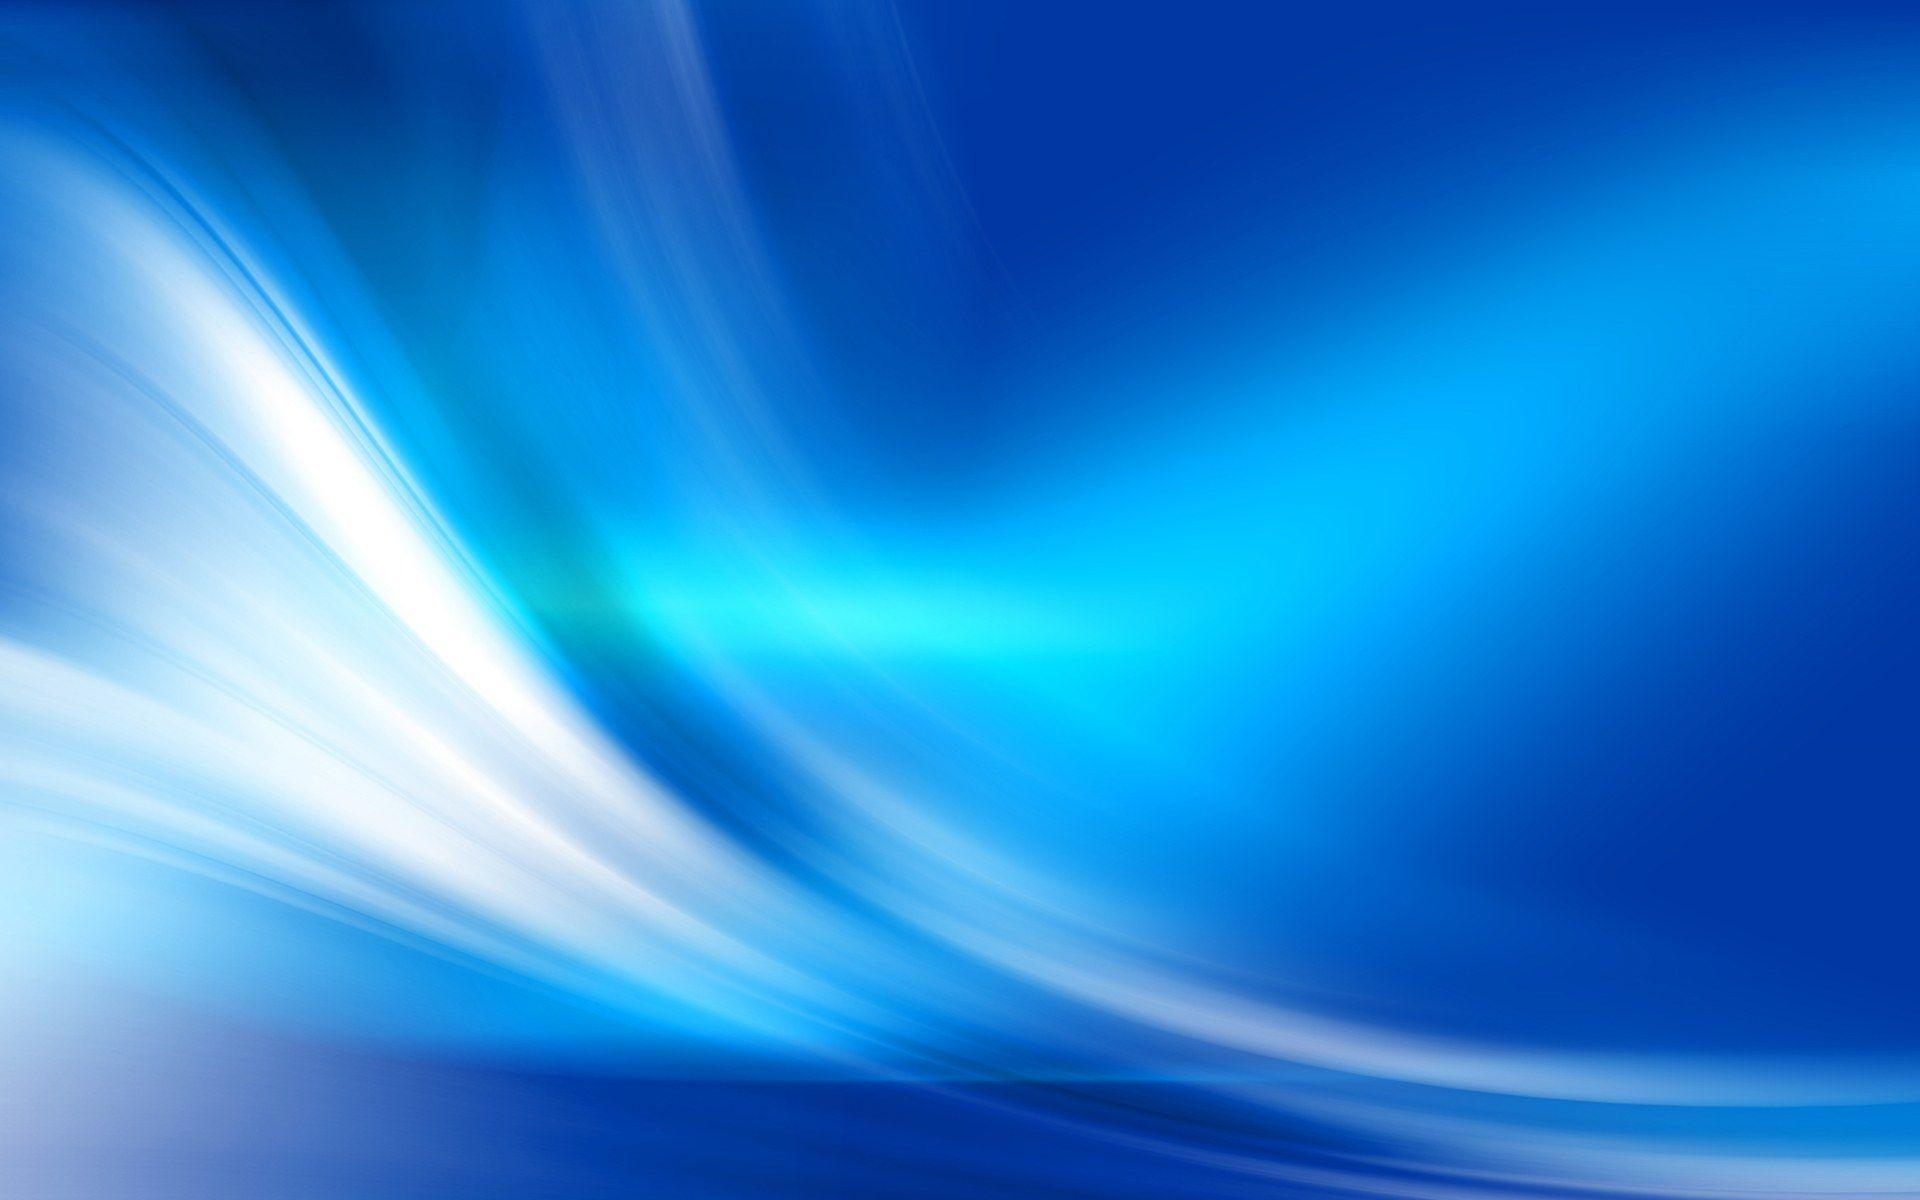 Pretty Blue Wallpapers 1920x1200